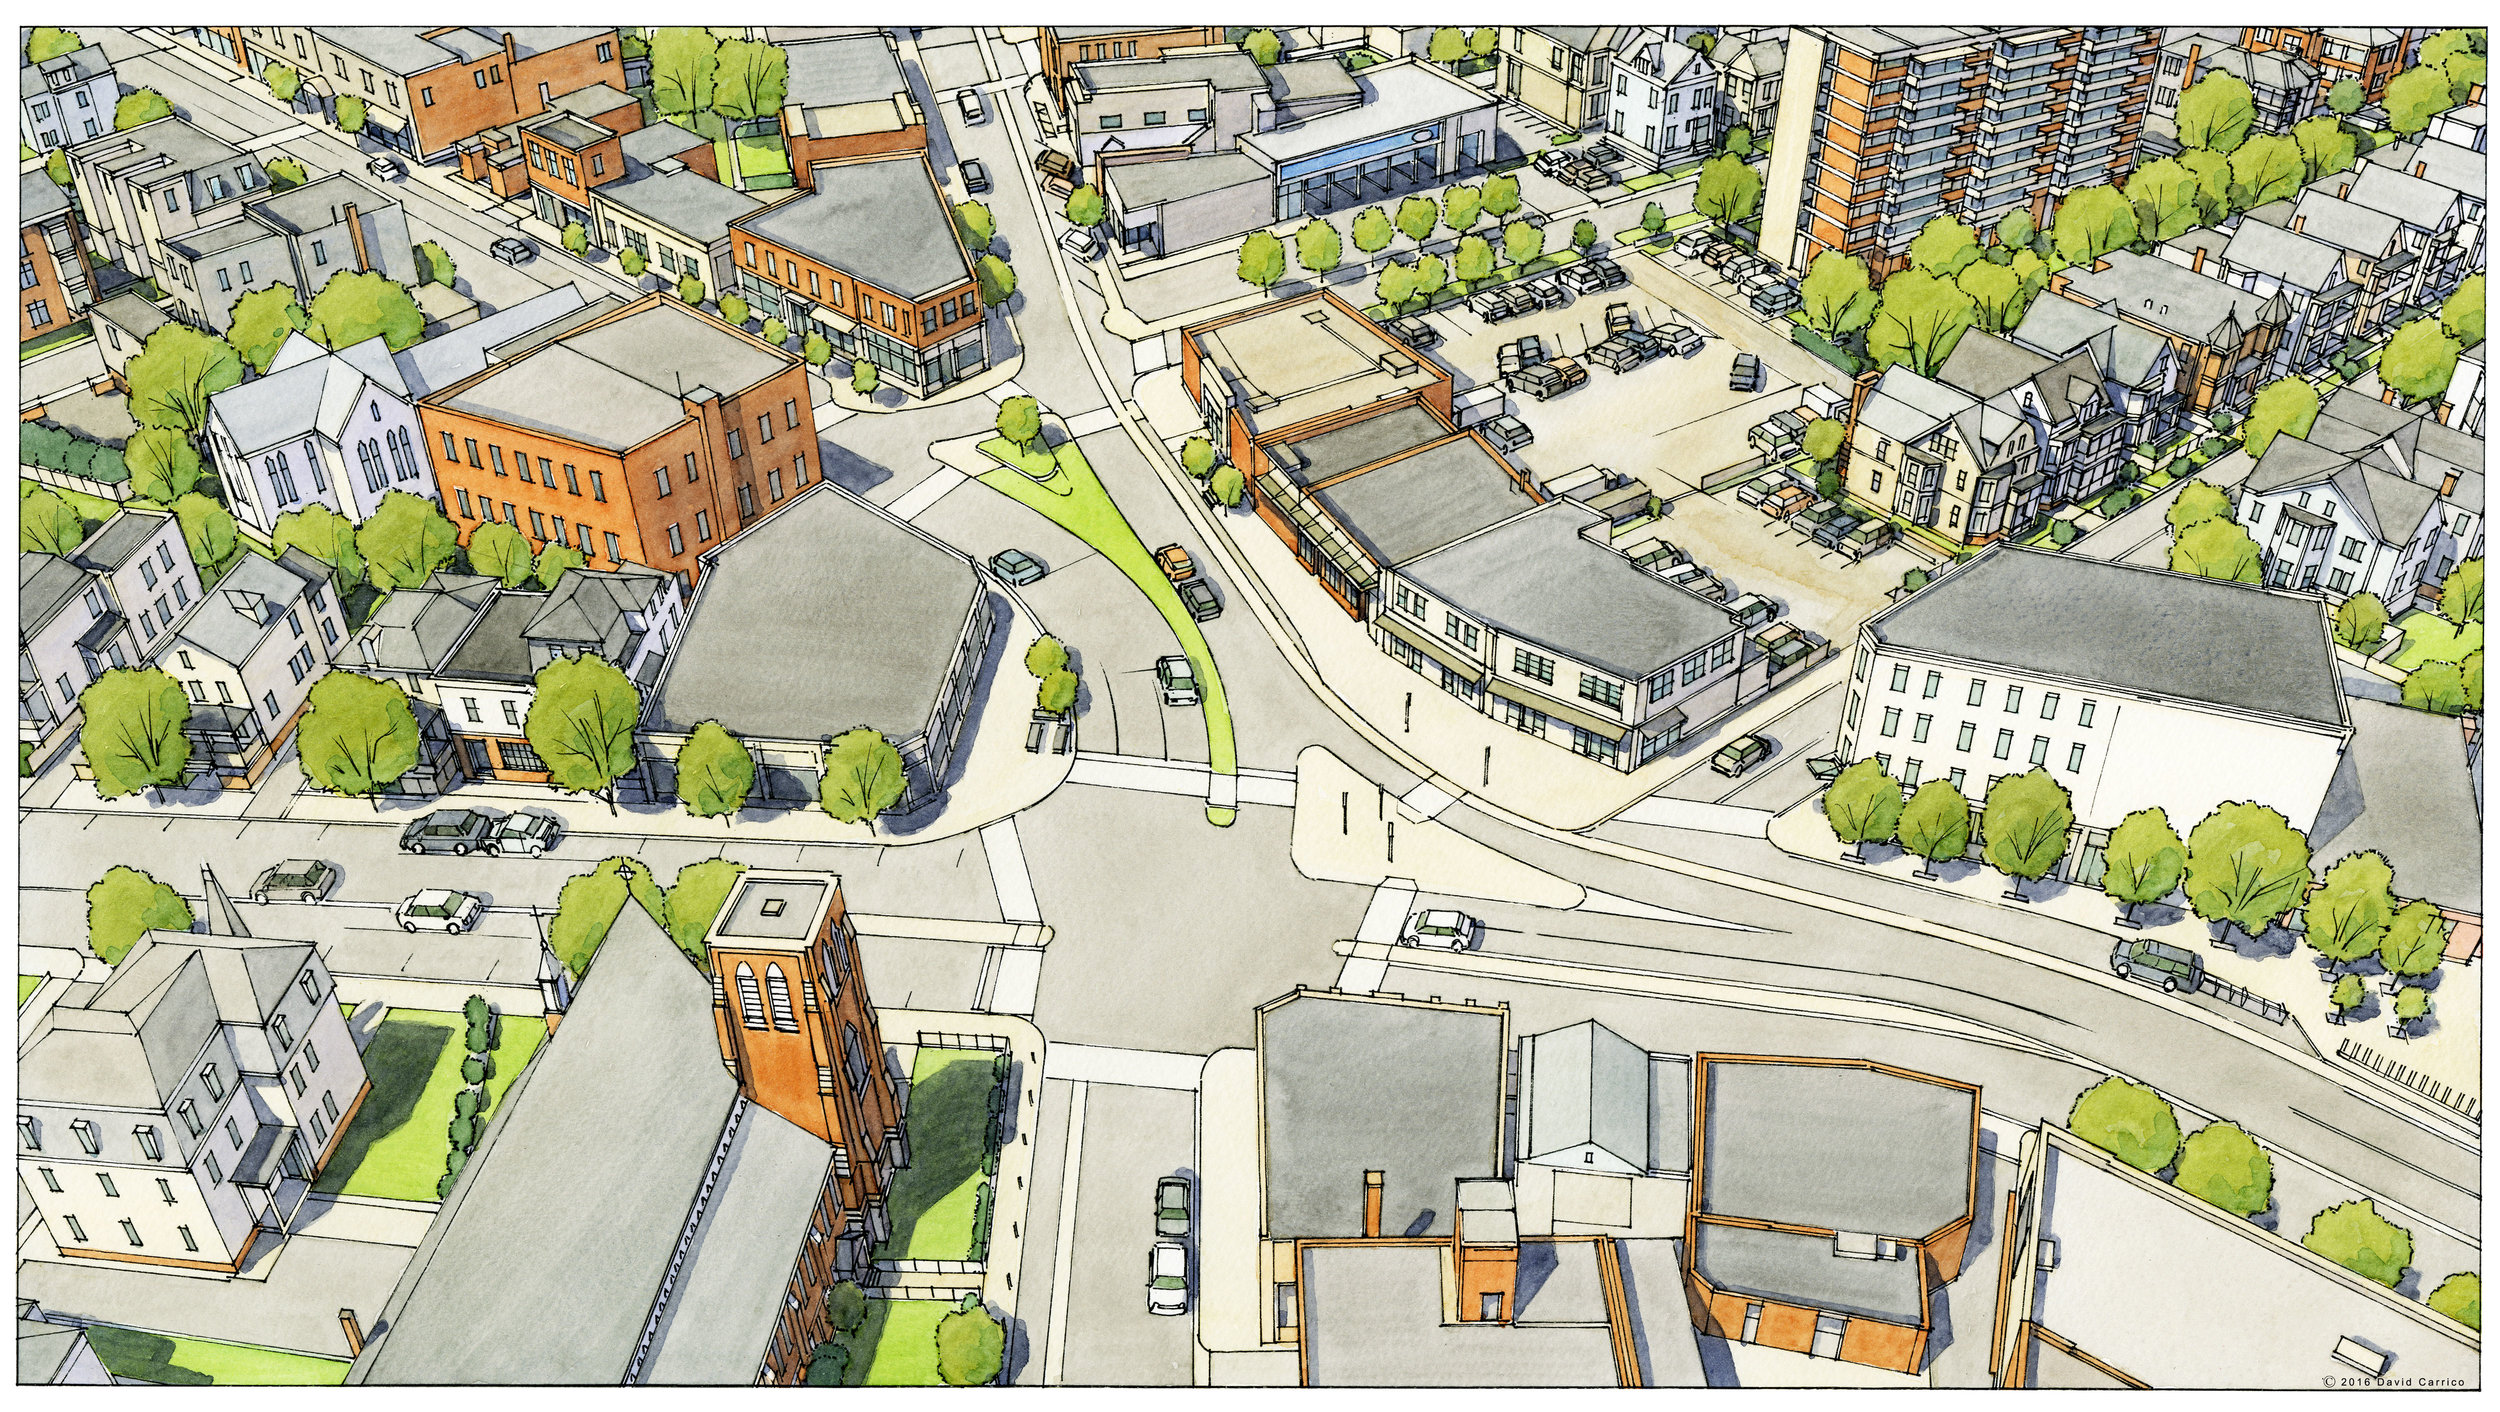 Union-Square-Somerville-Ave-Intersection-Birdseye-Existing.jpg